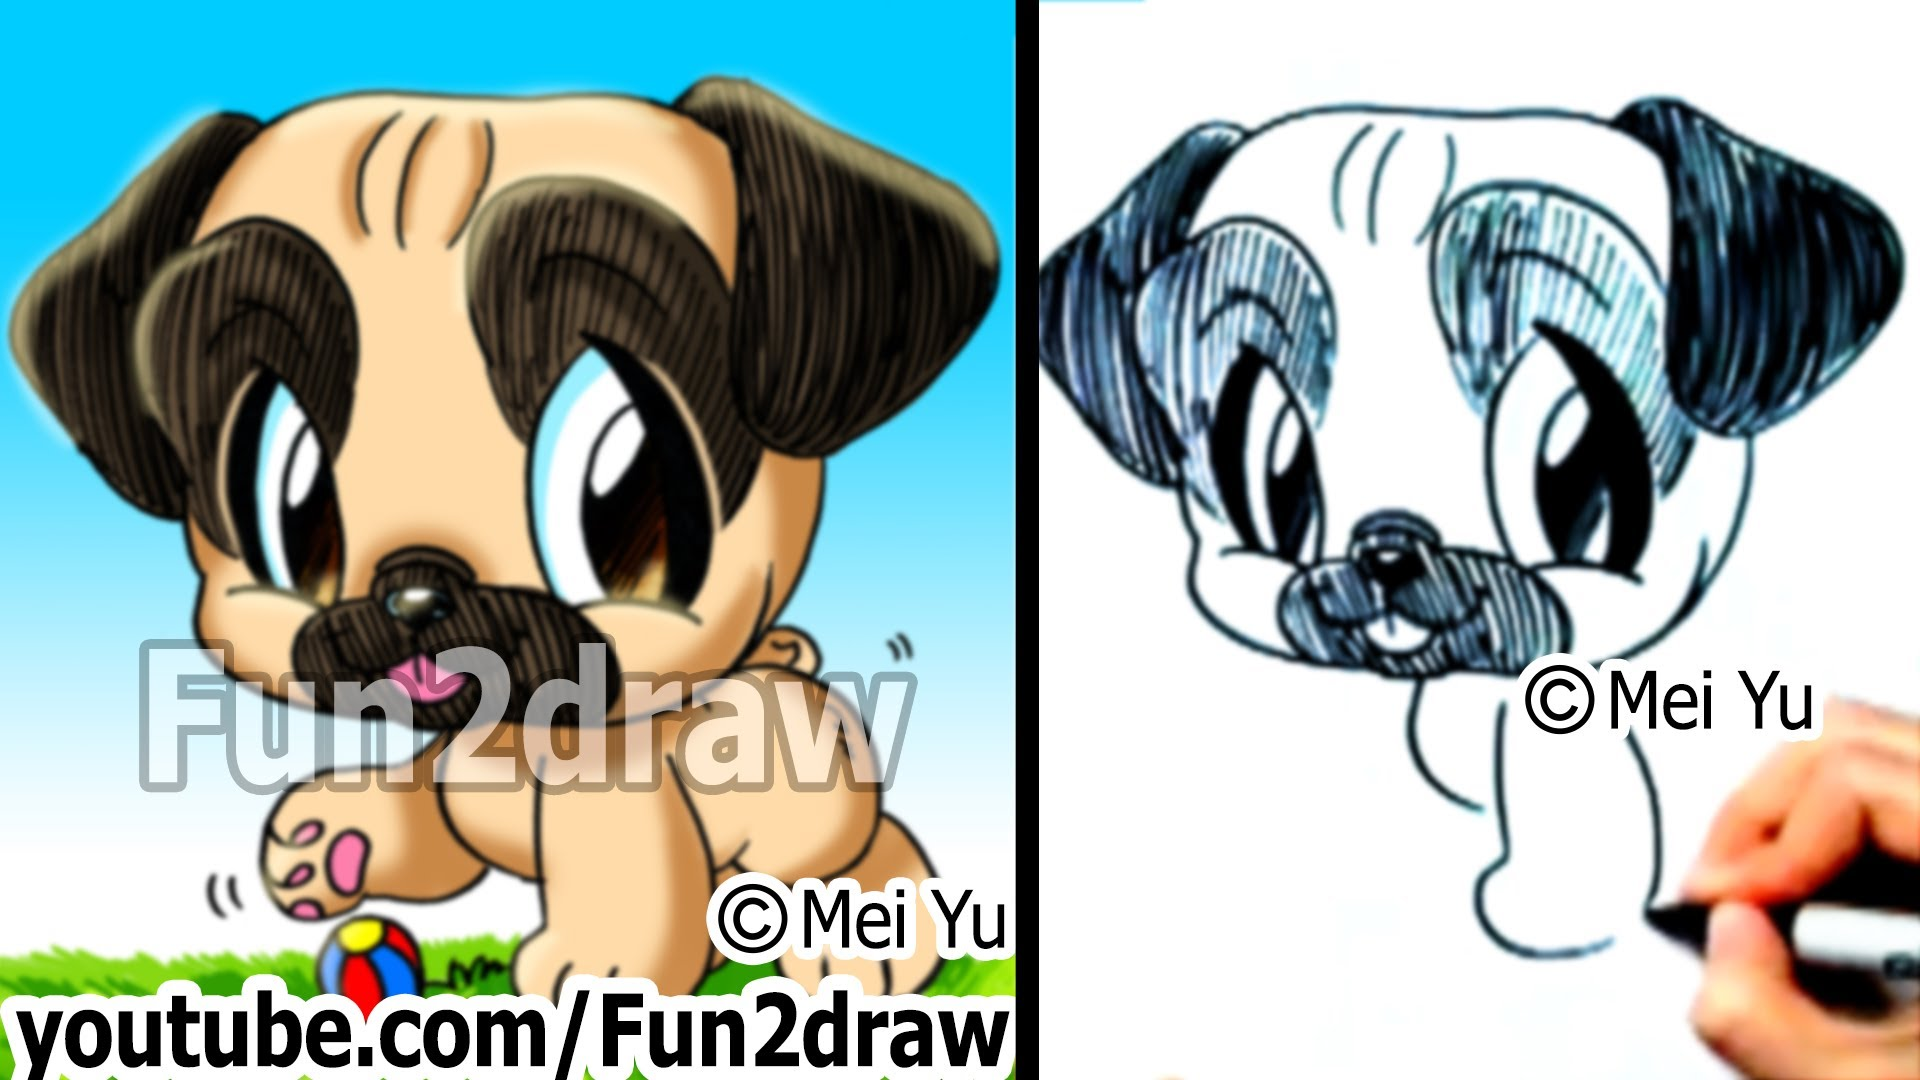 Drawn pug draw a To Draw Draw to Fun2draw